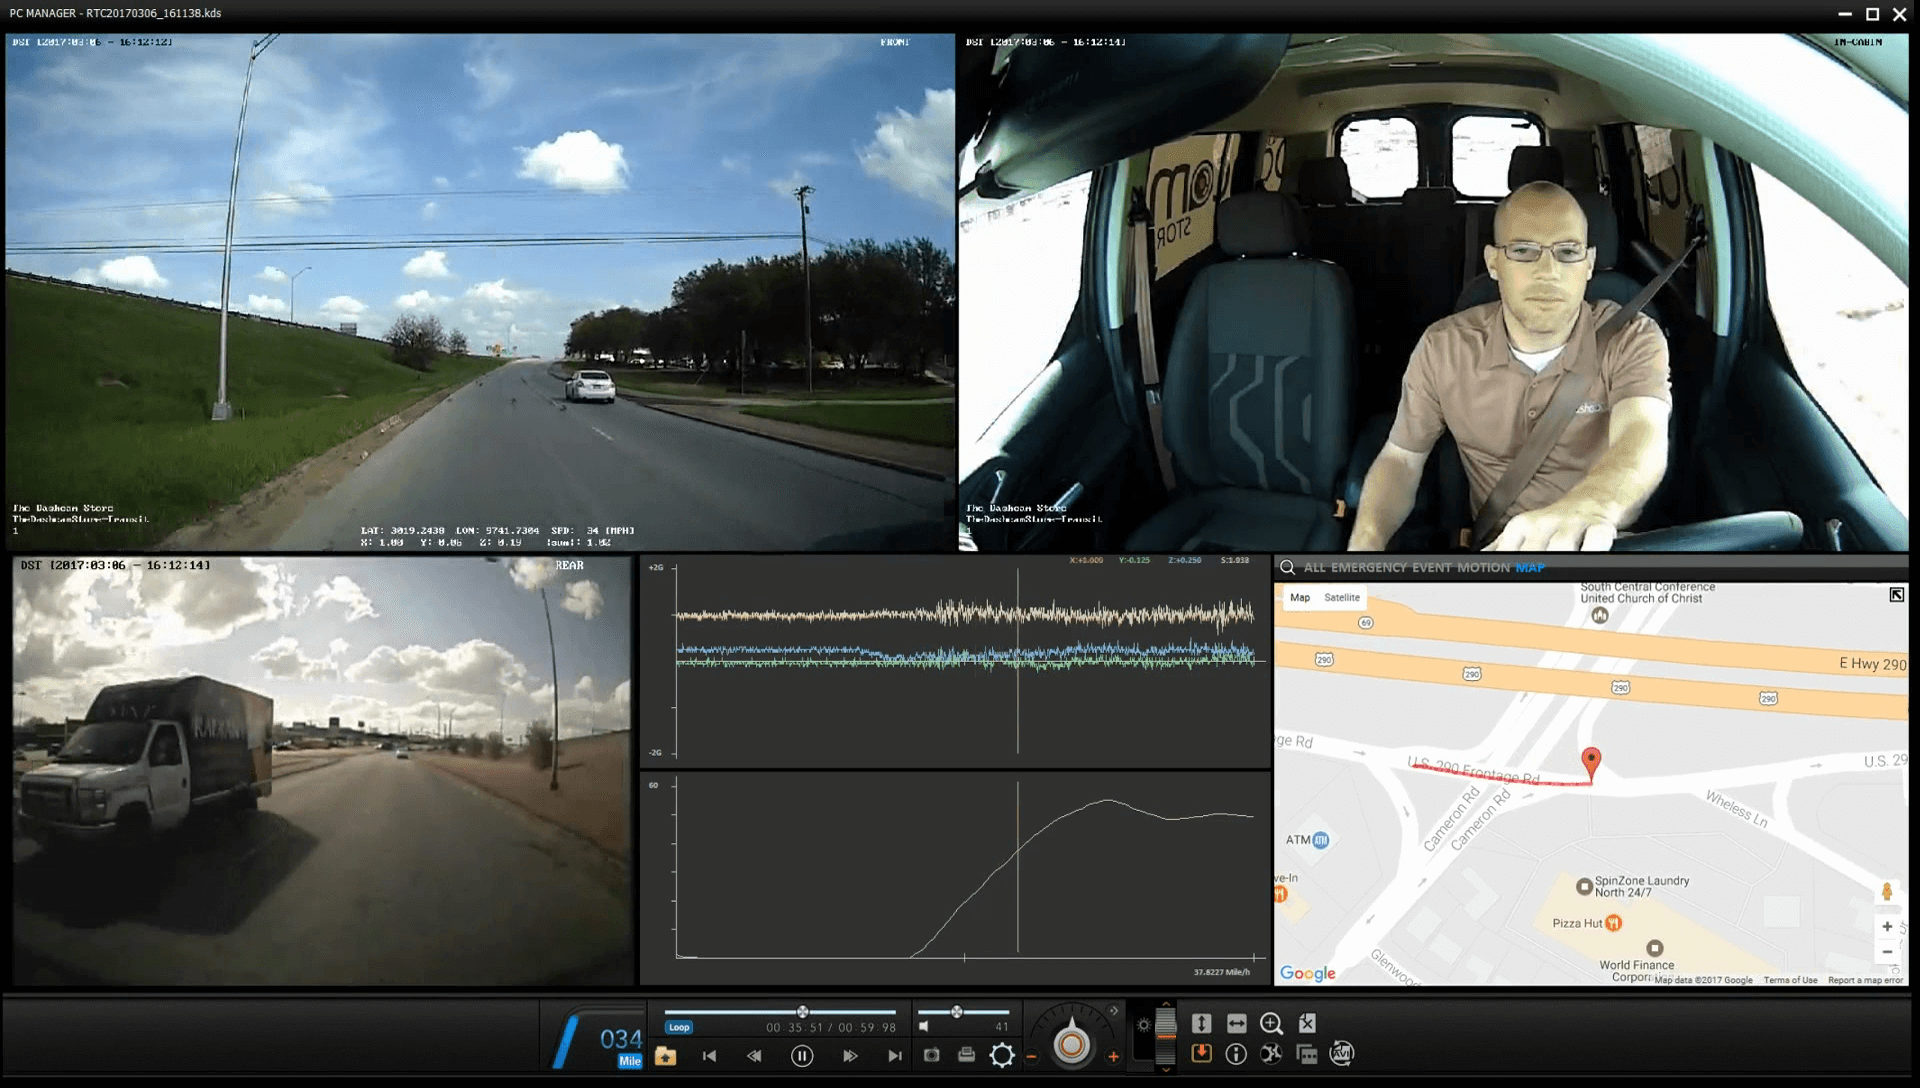 VT-300 Fleet Management Software: Daytime Driving View